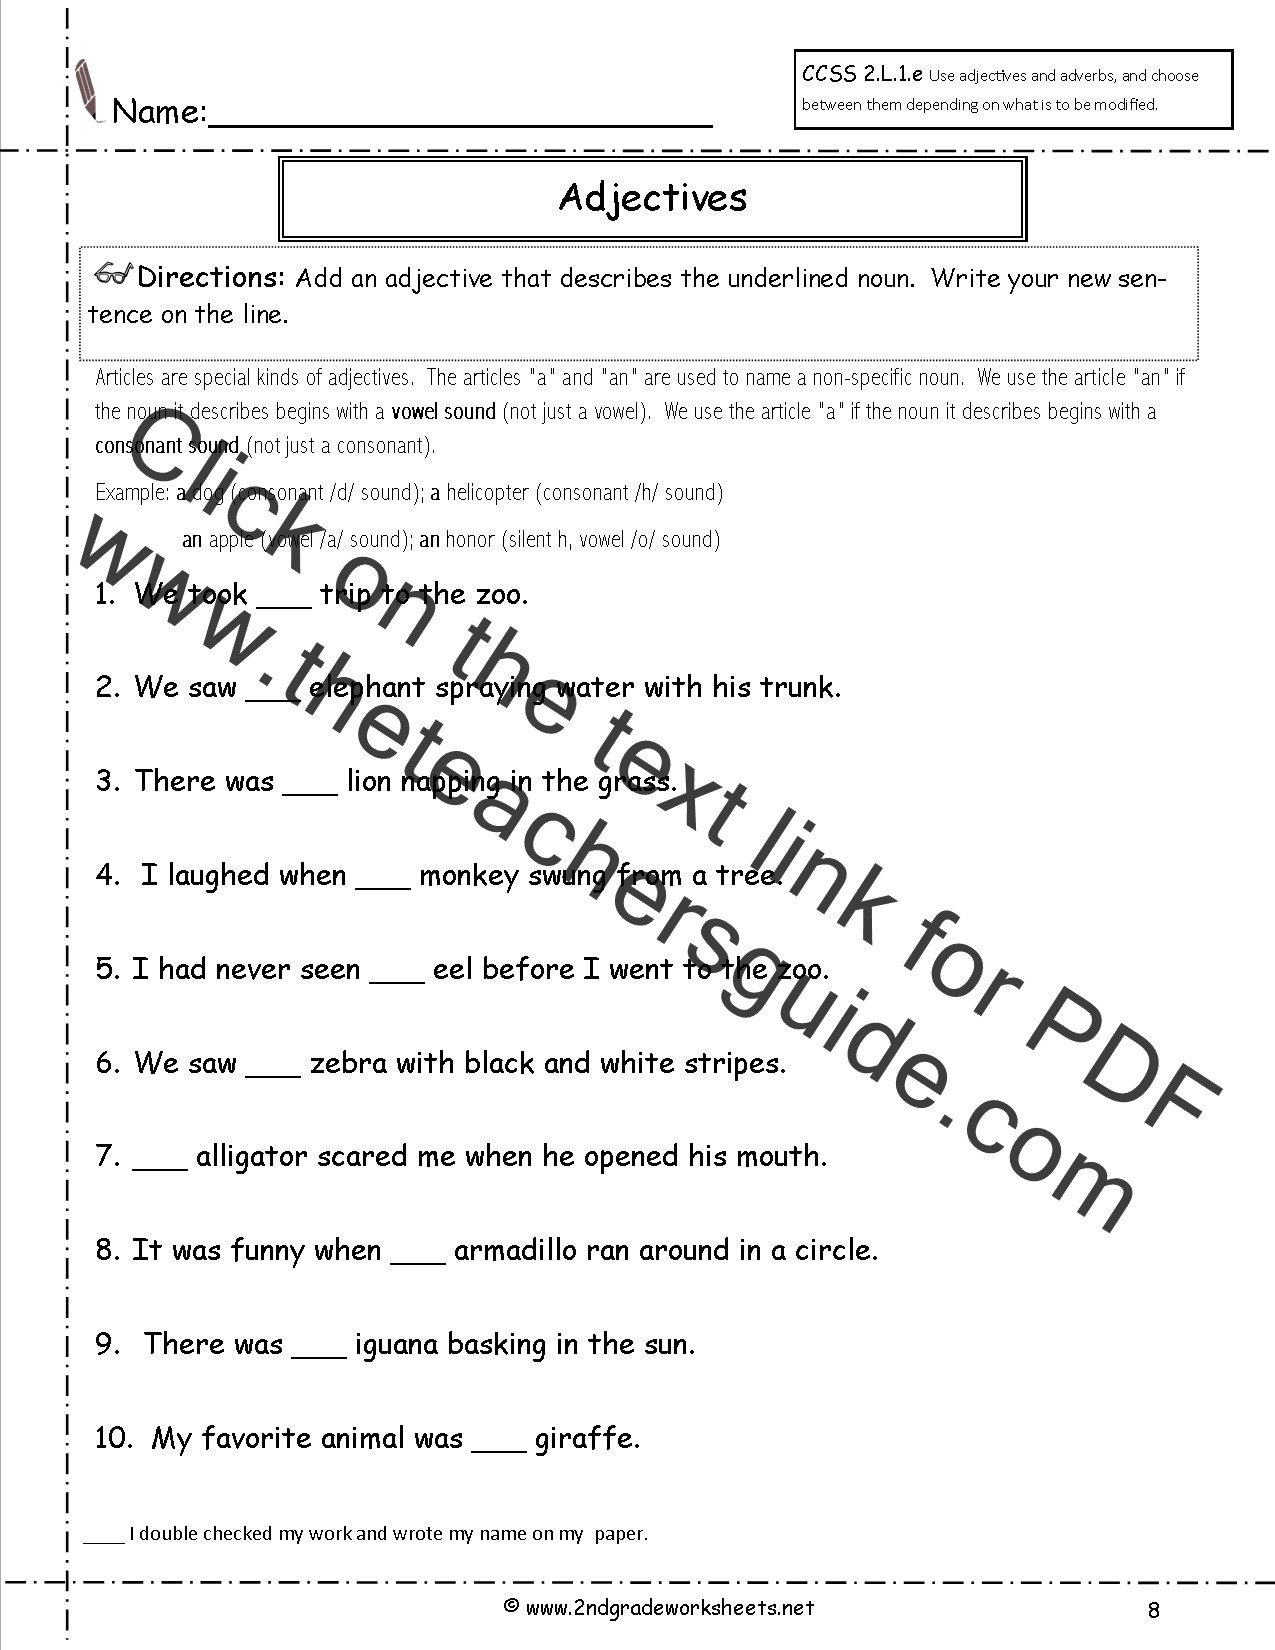 Grammar Worksheets 3rd Graders Free Language Grammar Worksheets and Printouts